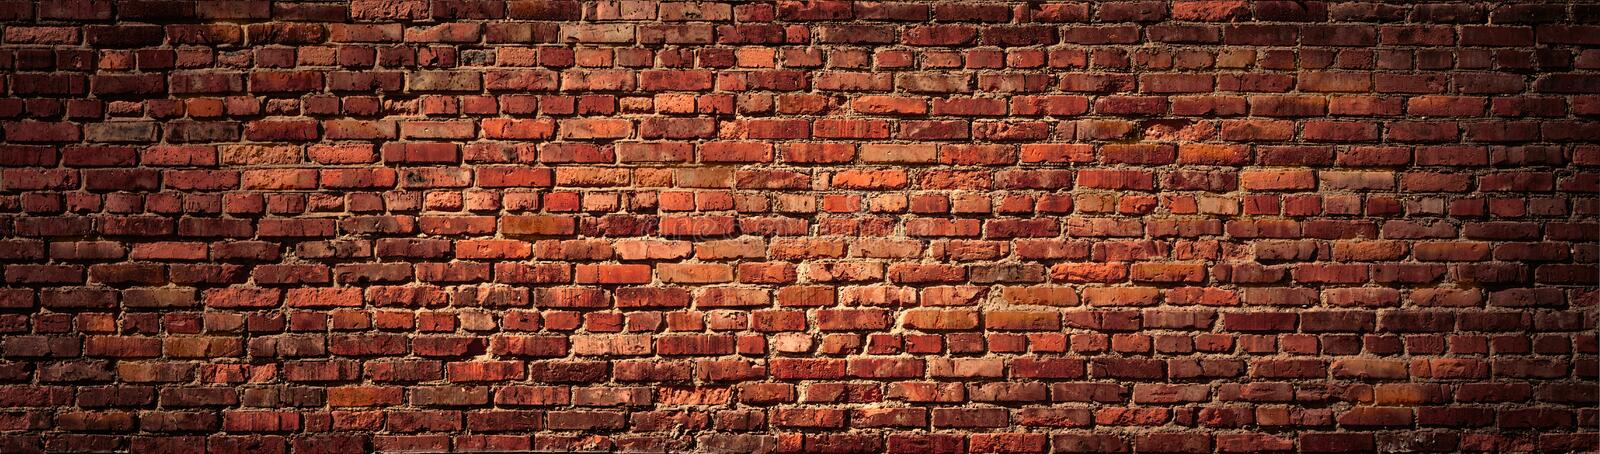 Old Red Brick wall panoramic view. royalty free stock image